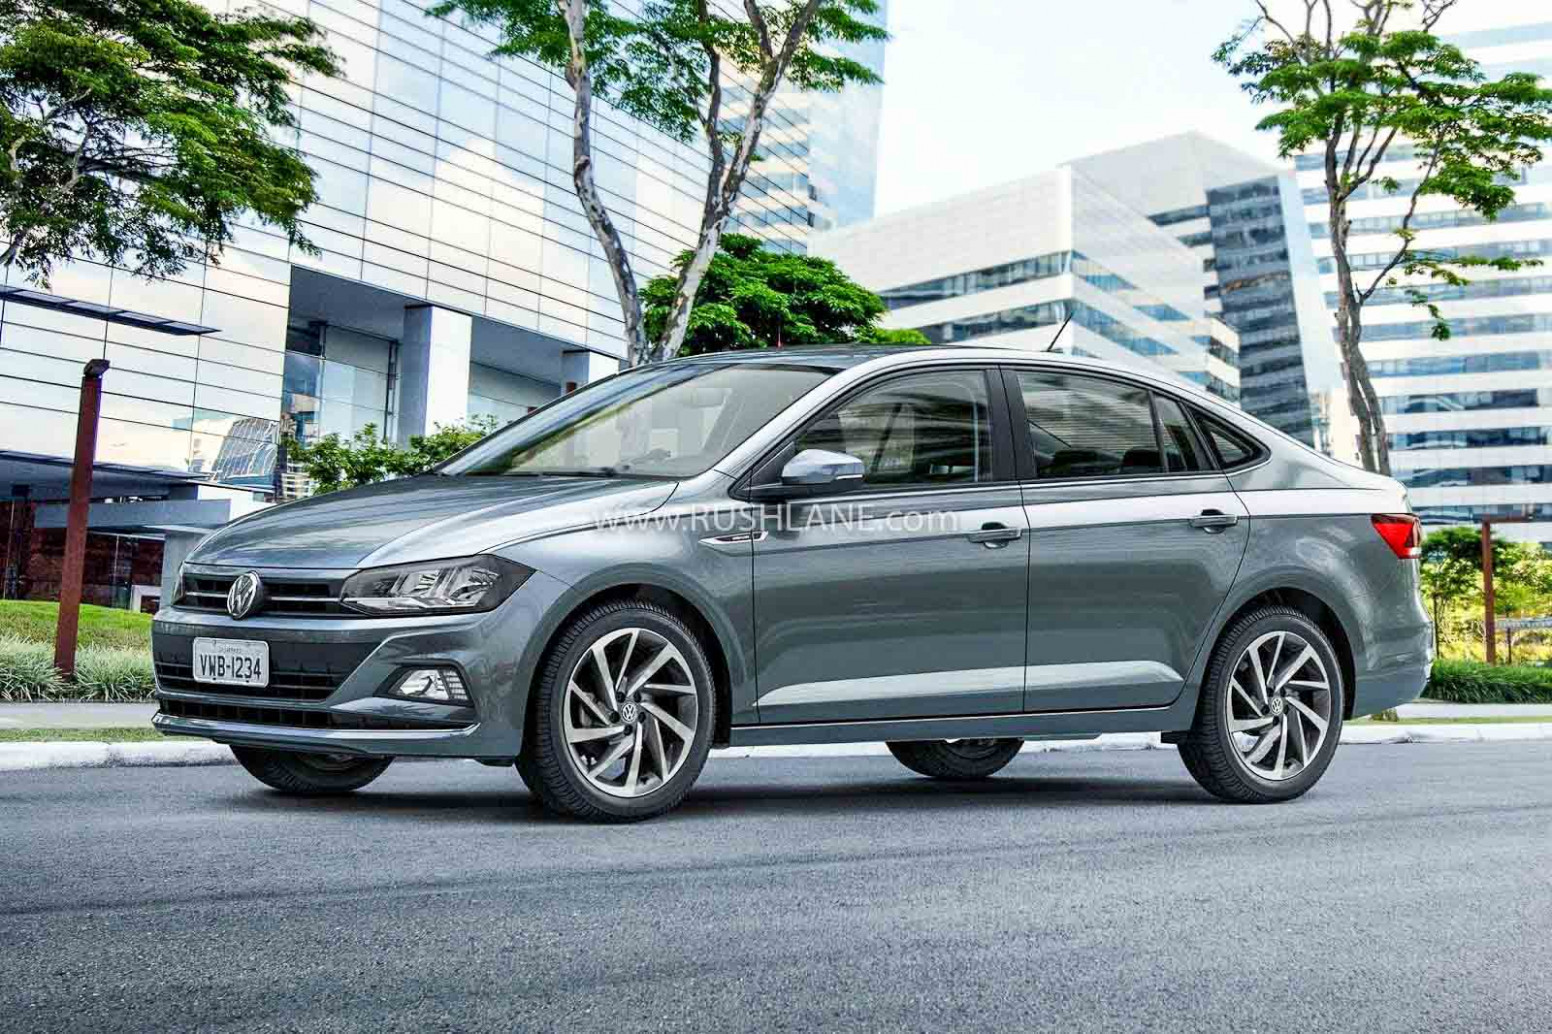 10 Volkswagen Vento new gen (Virtus) India debut at Auto Expo